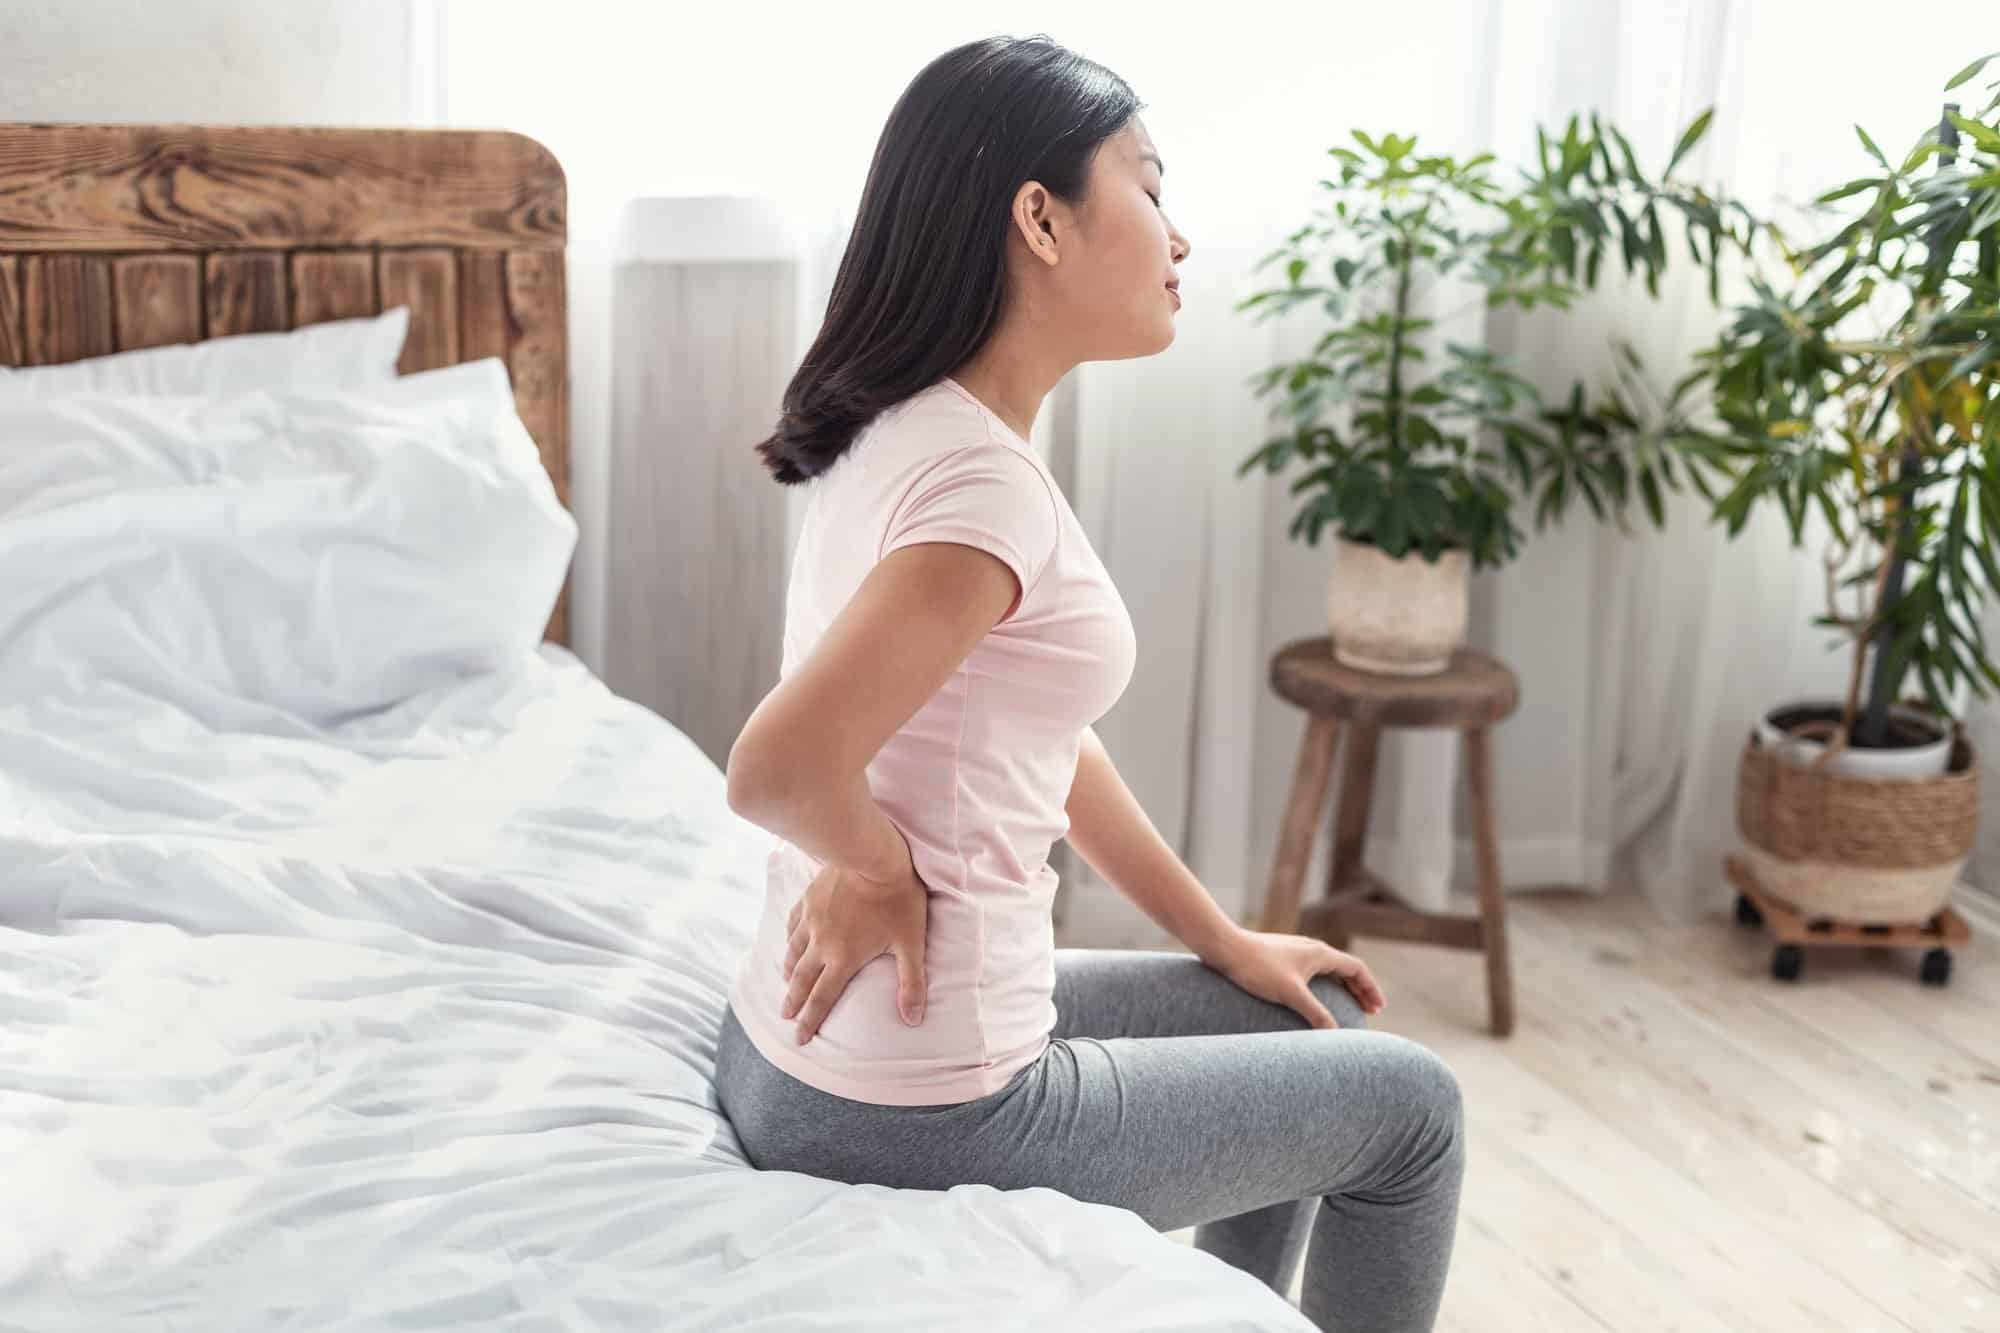 Asian Lady Suffering From Pain In Back Sitting On Bed